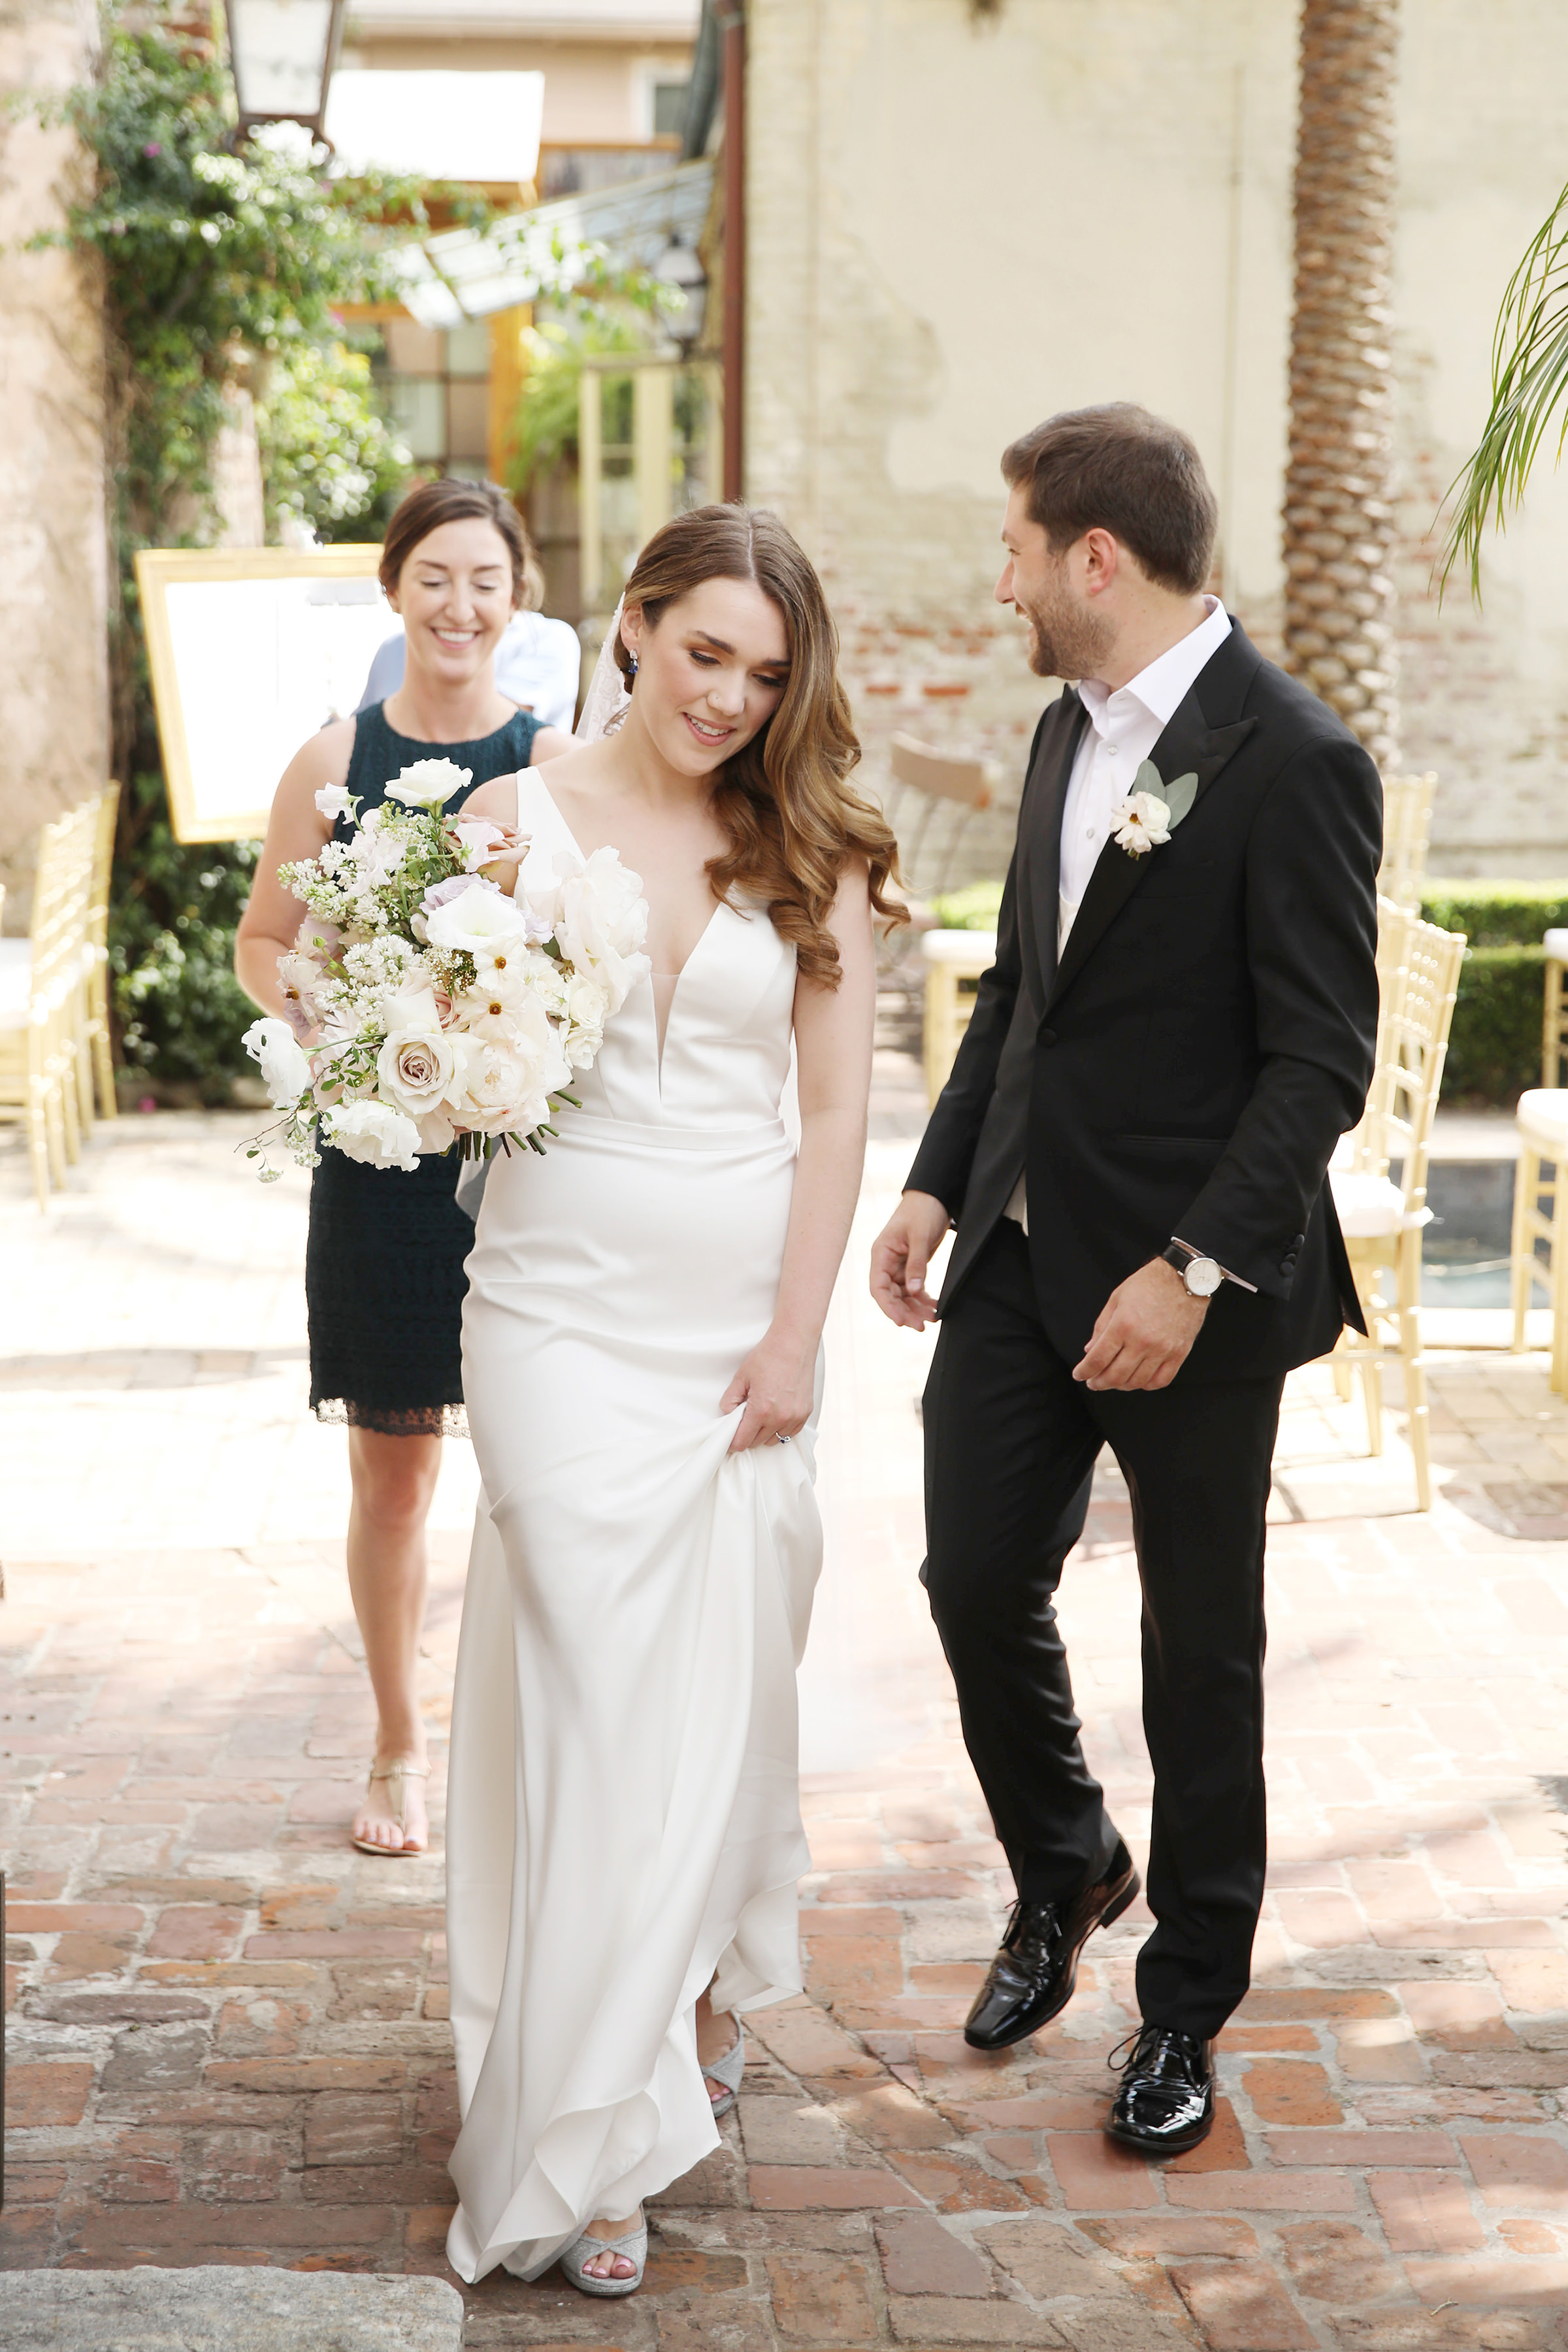 Bride and groom walking with planner - photo by Kenny Kim Photography